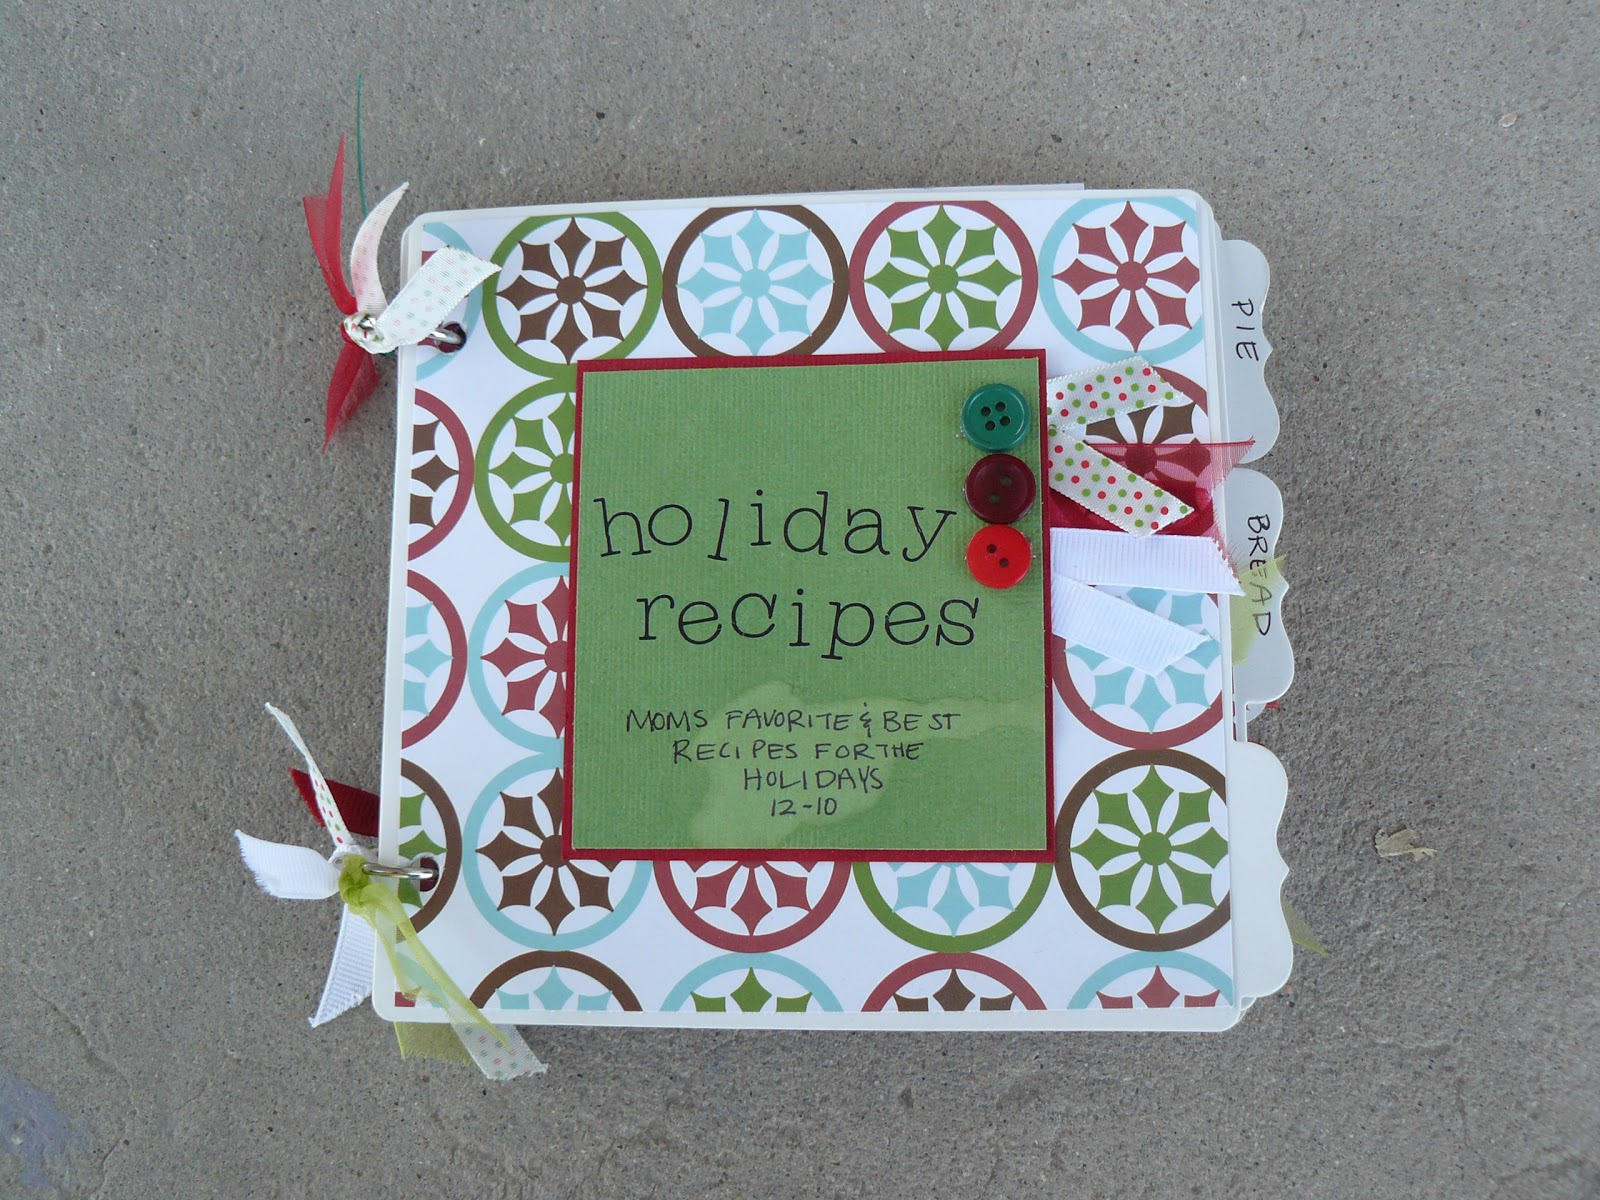 How to scrapbook a recipe book - I Got The Pages For This Book At Michael S A Couple Of Years Ago I Covered Each Page With Scrapbook Paper And Made Recipe Card Pockets For Each Page Too